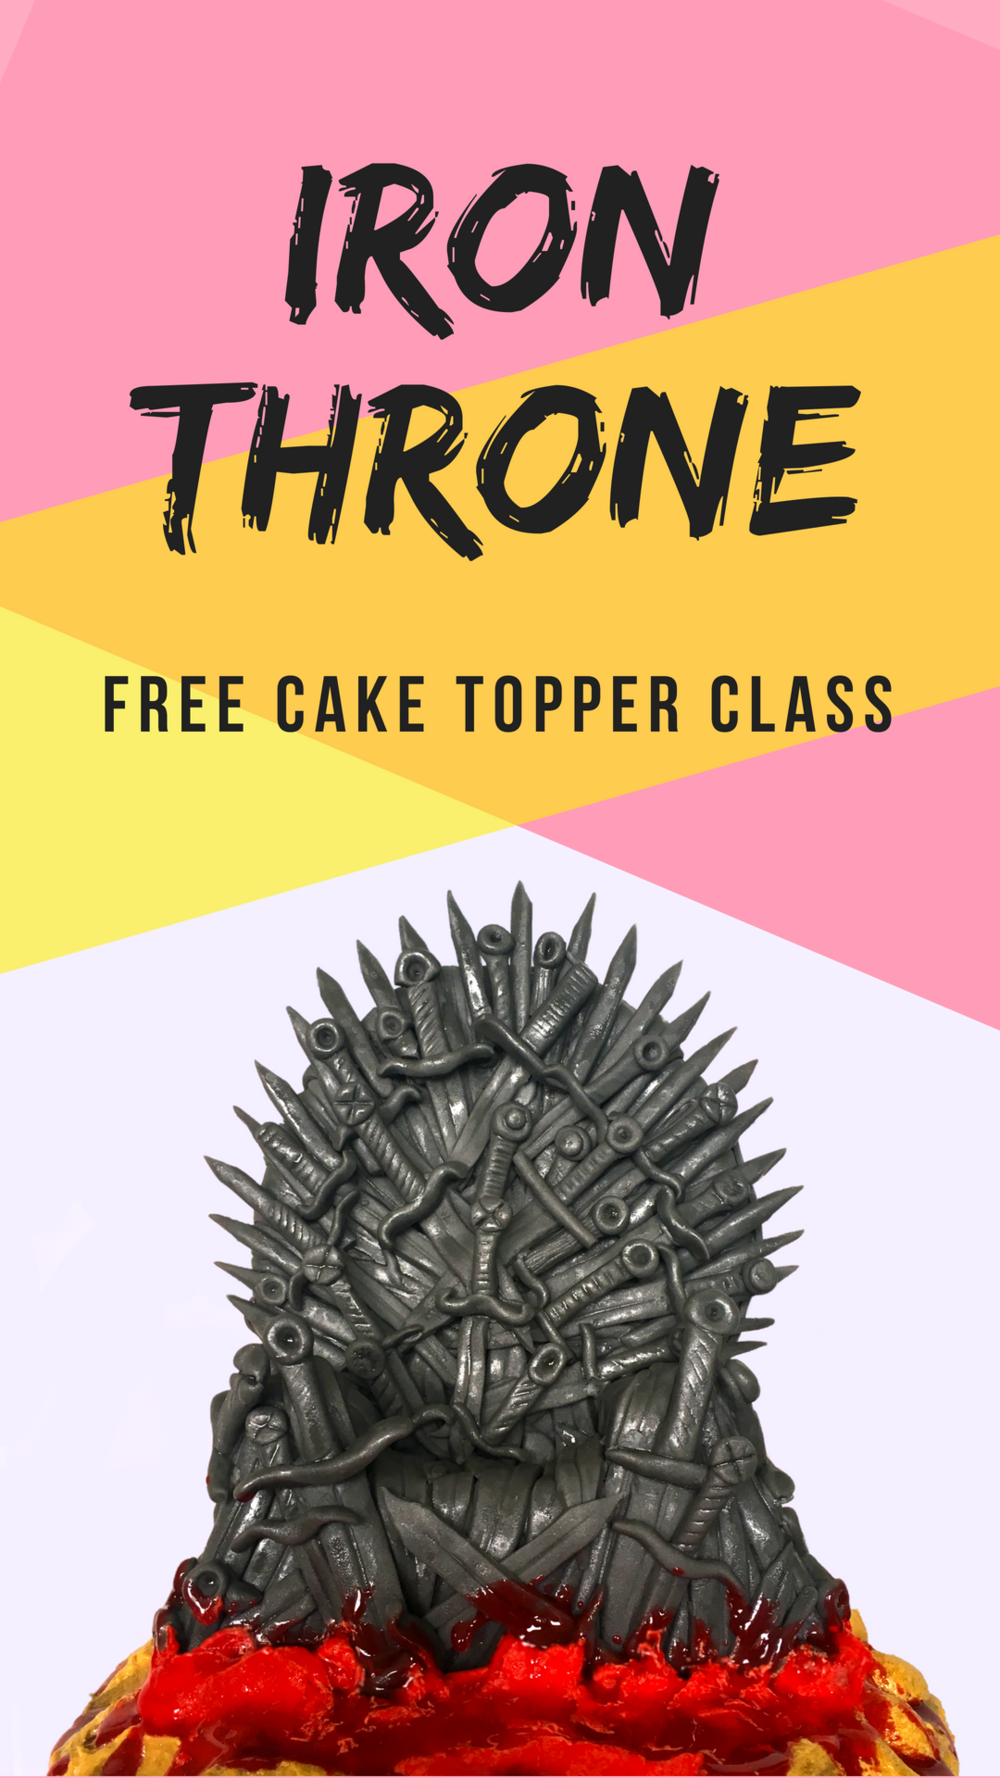 Iron Throne Cake Topper Tutorial, completely edible made from krispie treats and fondant. Perfect for all Game of Thrones fans needing a fix before season 8 starts